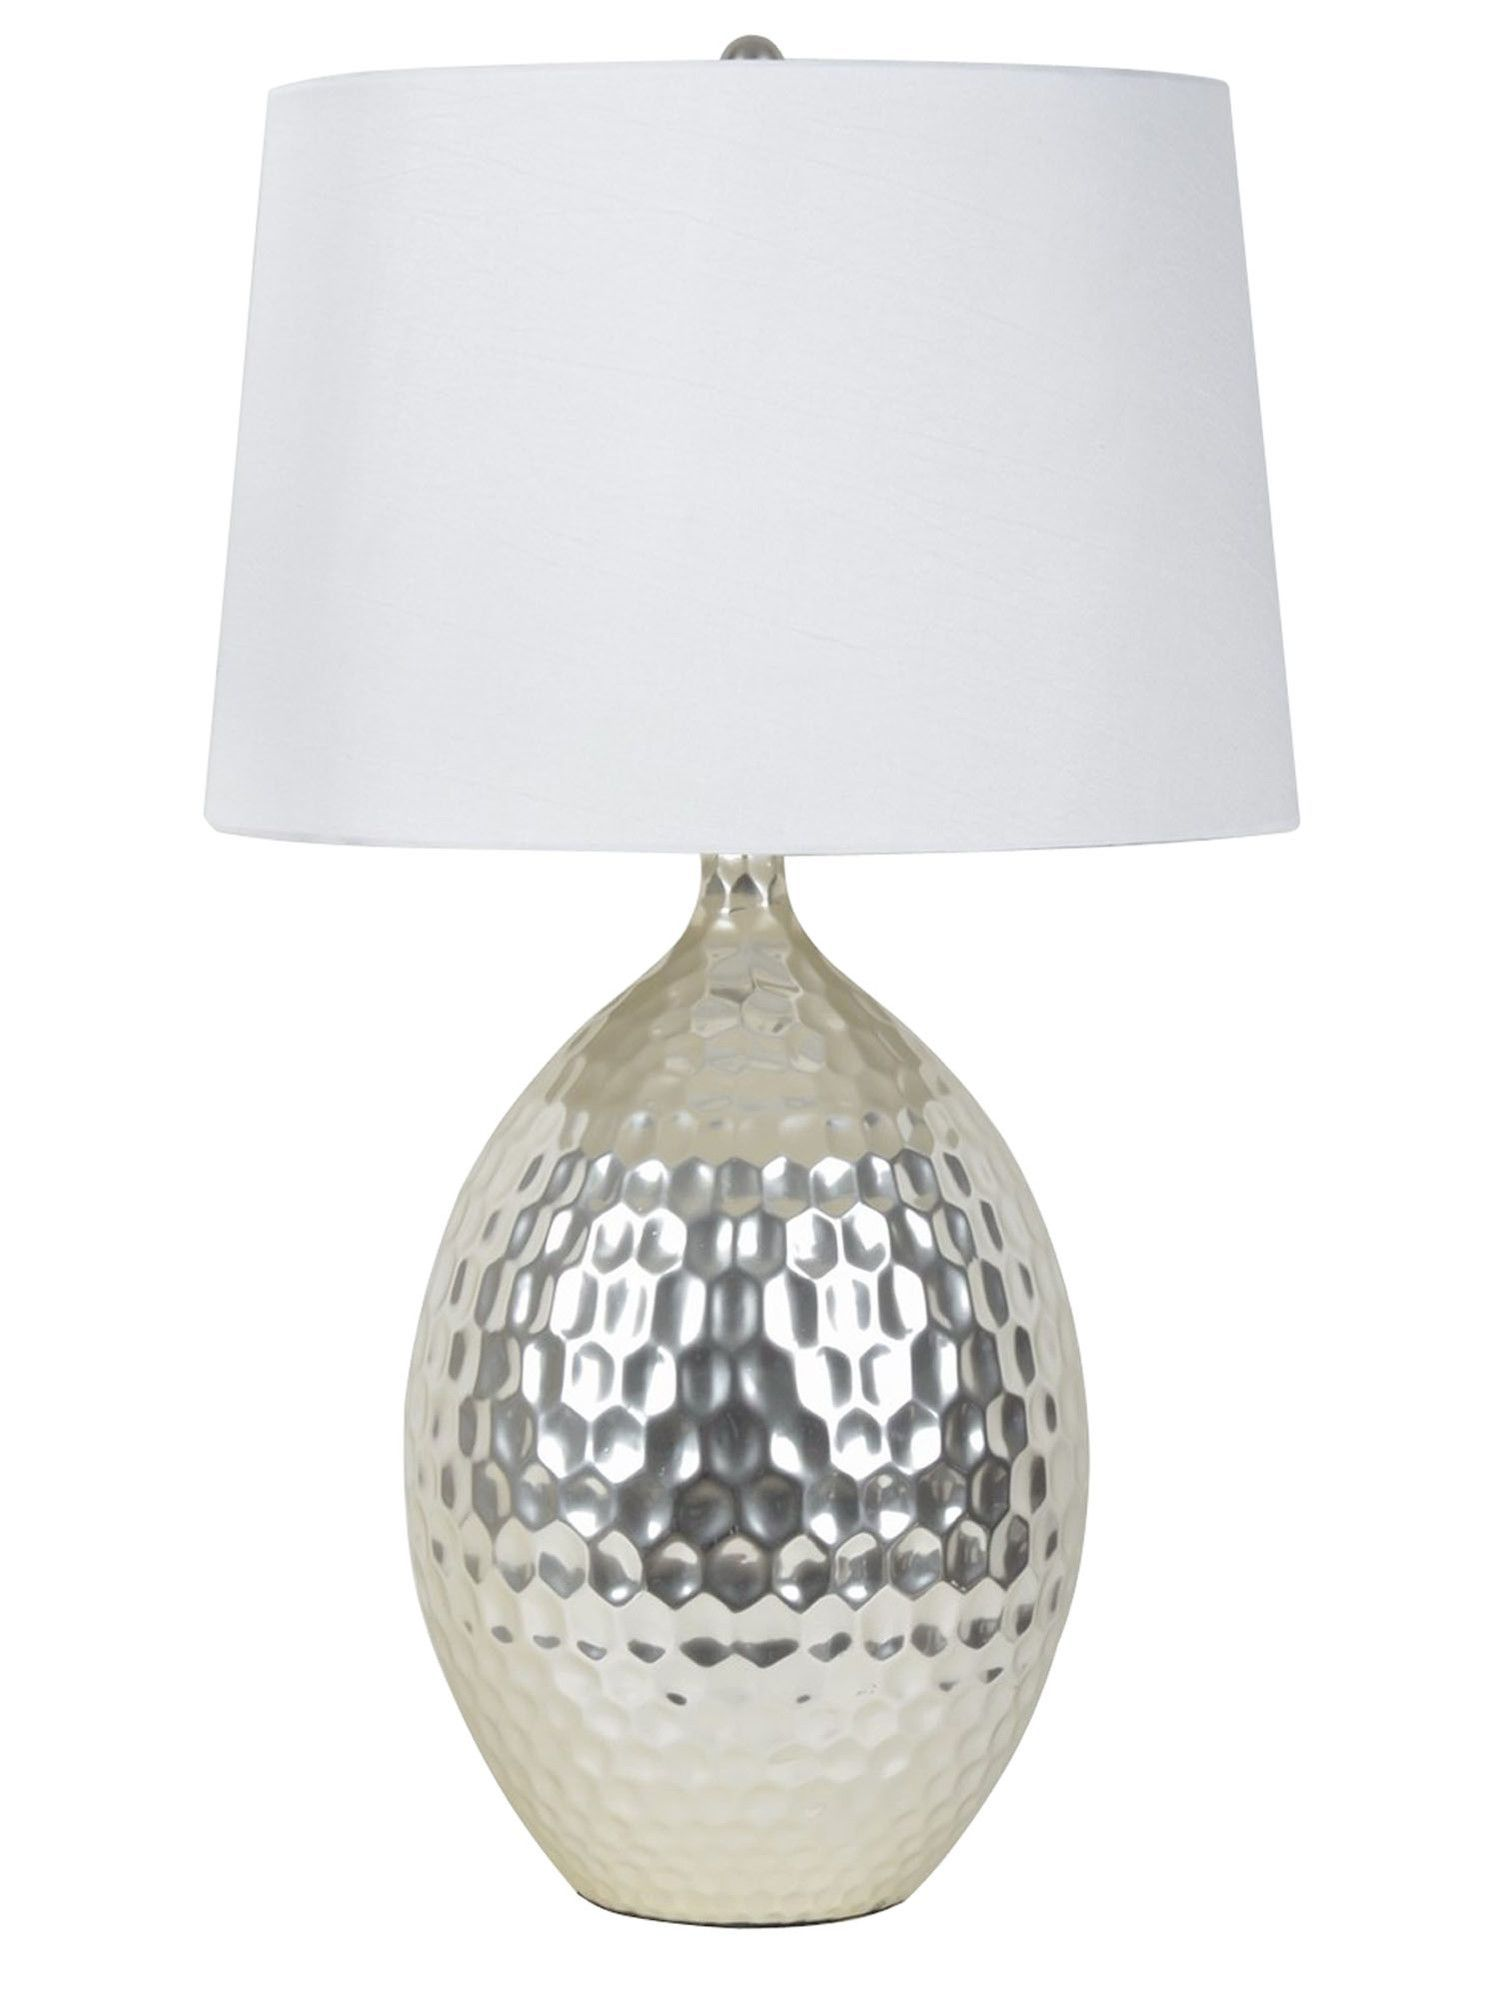 J Hunt Home 28 5 H Table Lamp With Empire Shade Silberne Tischlampen Silberne Lampe Lampe